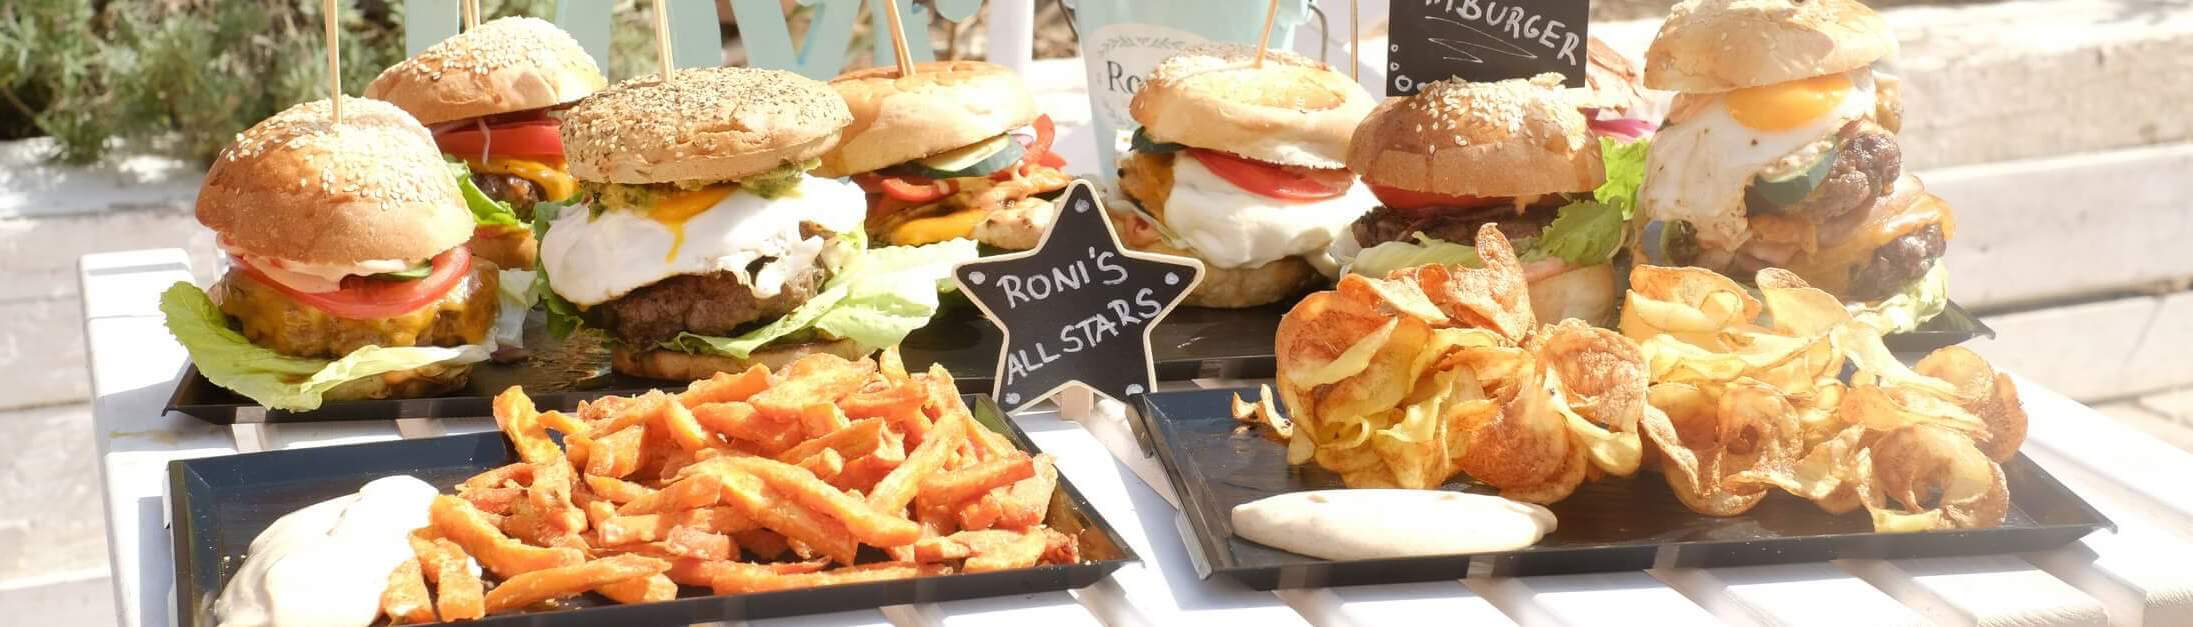 burger-ronis-playa-den-bossa-fries-deli-burgers